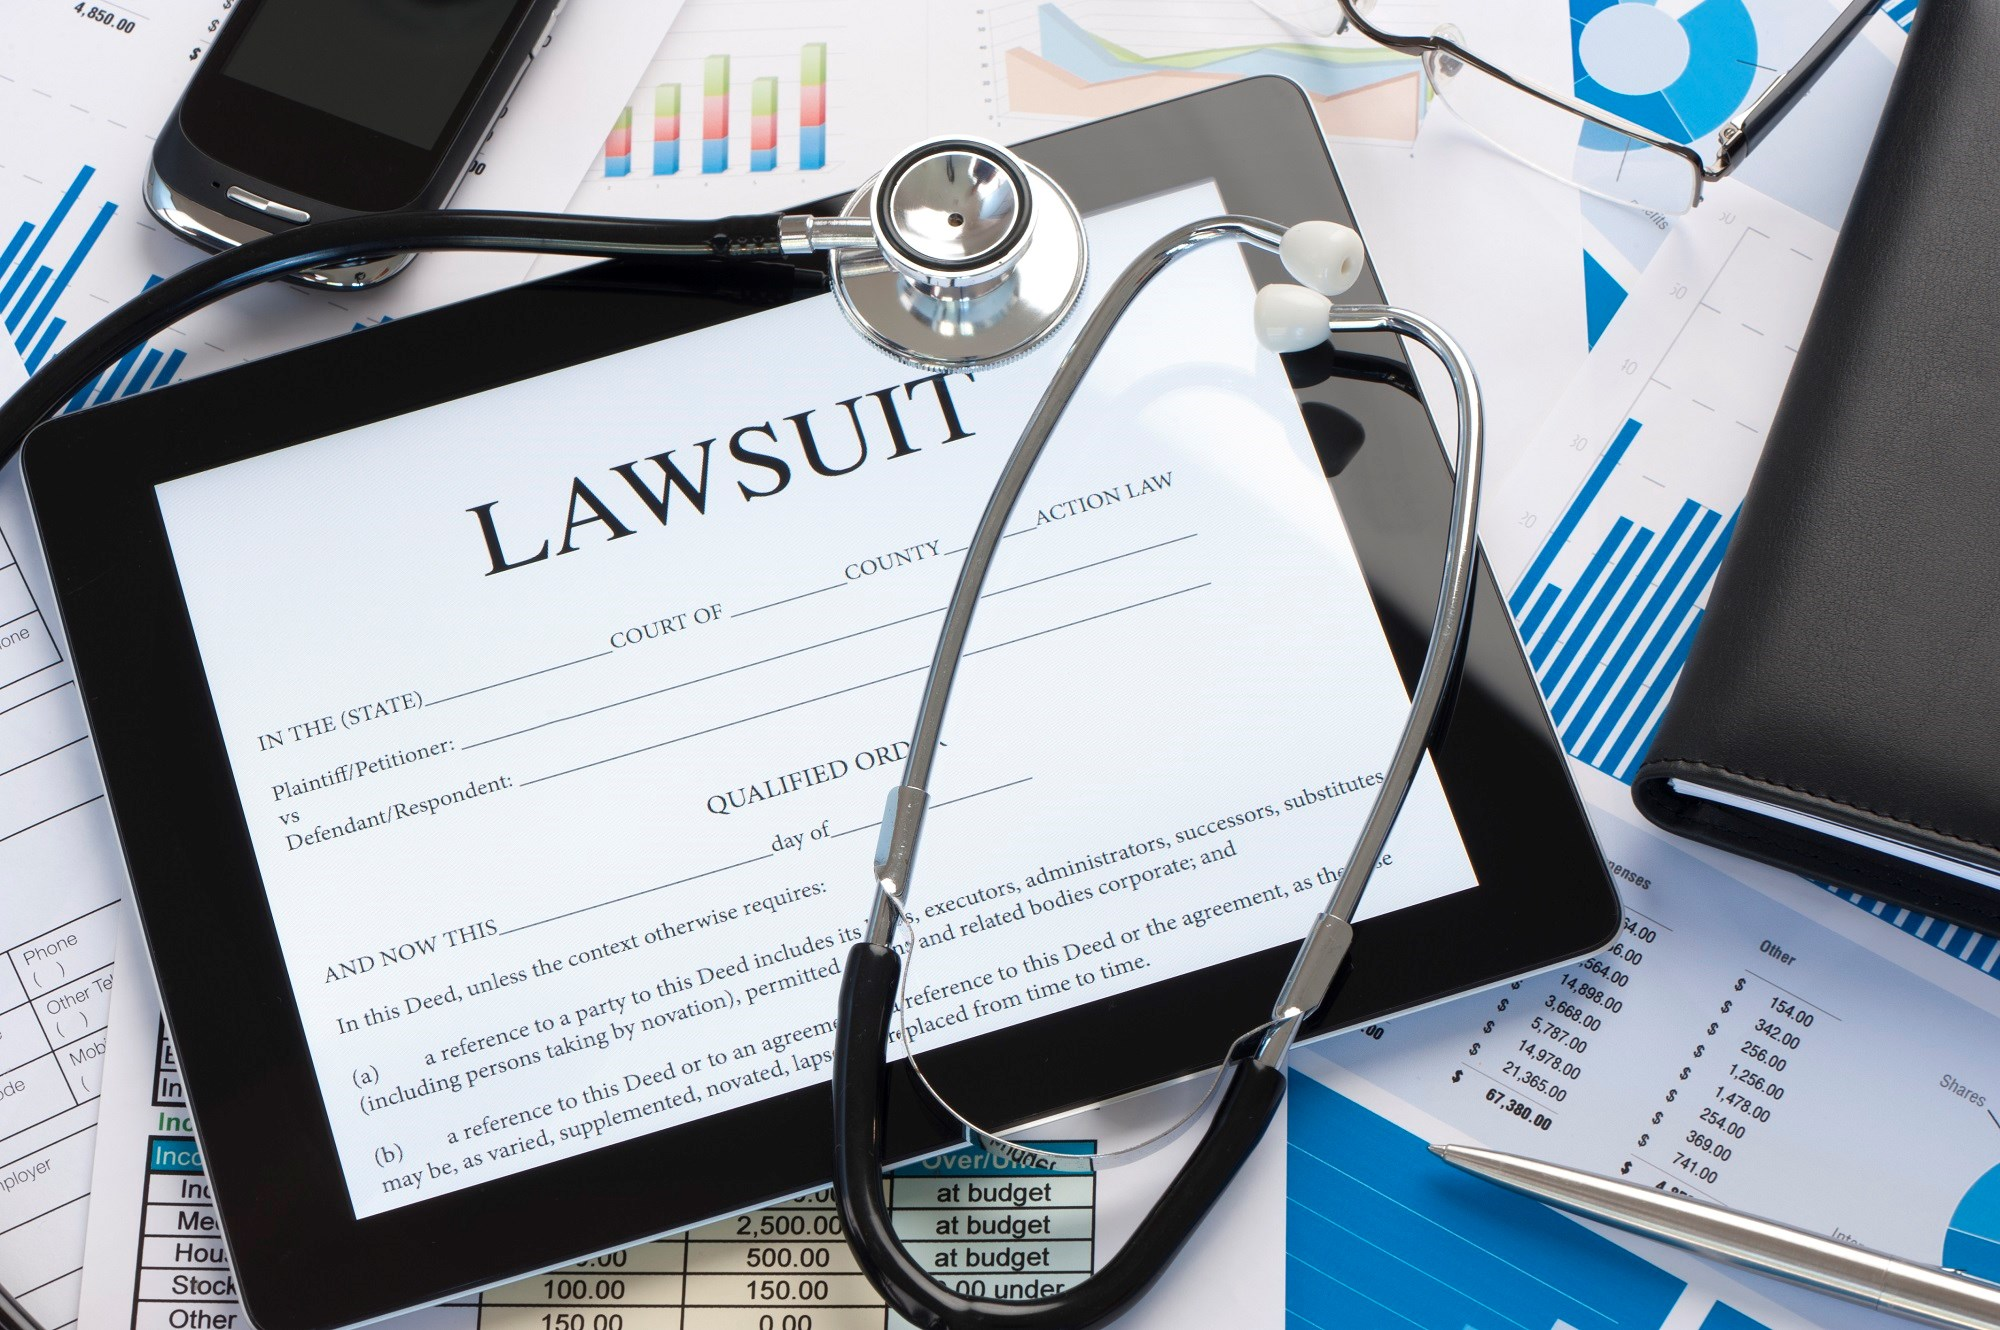 Targeted steps can be taken to minimize future risks of lawsuits.